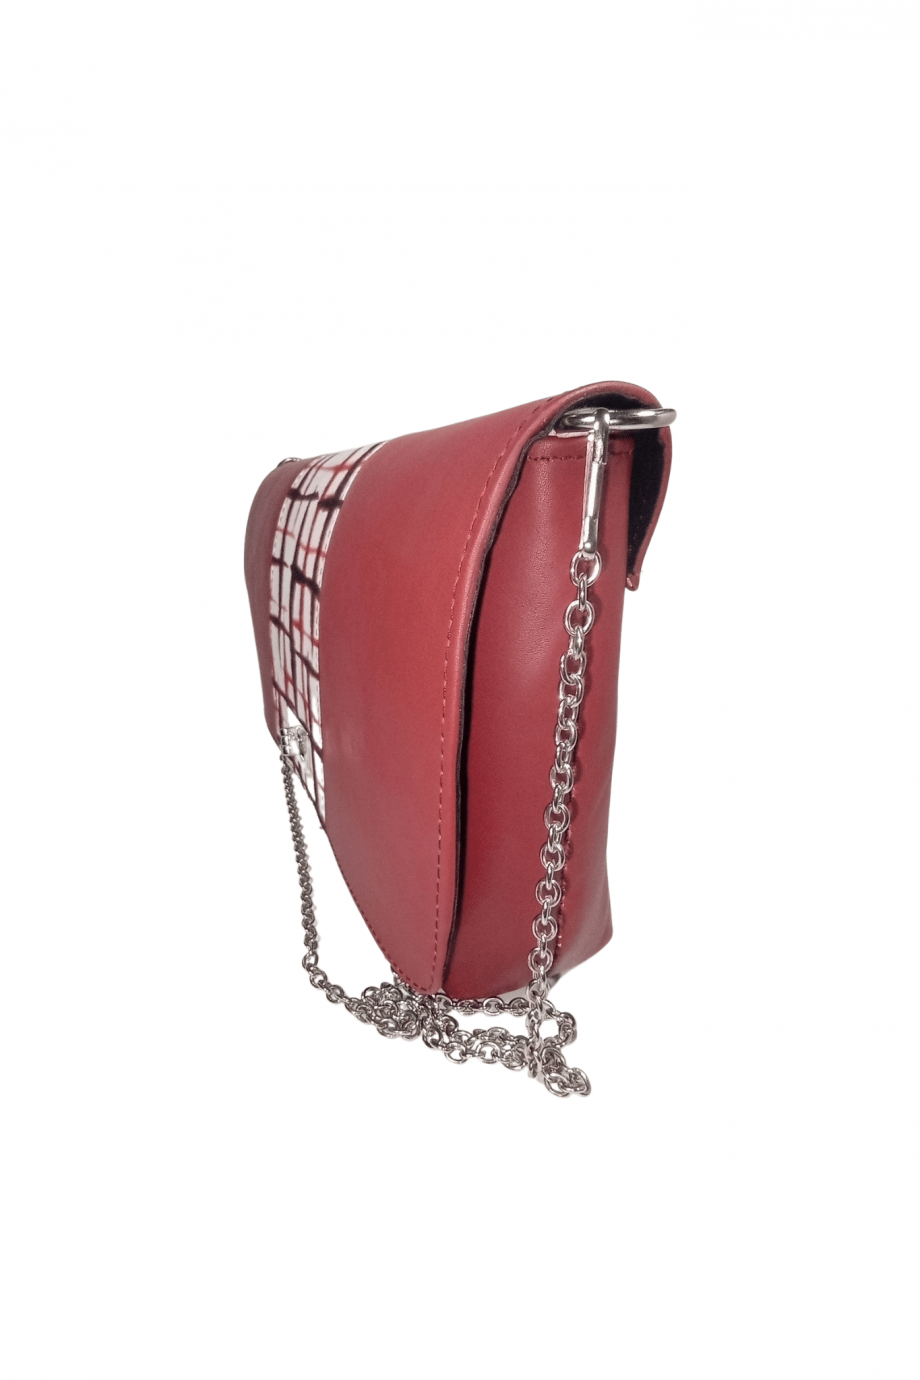 African Print Adire with Red Leather Handbag DEZE by Naborhi